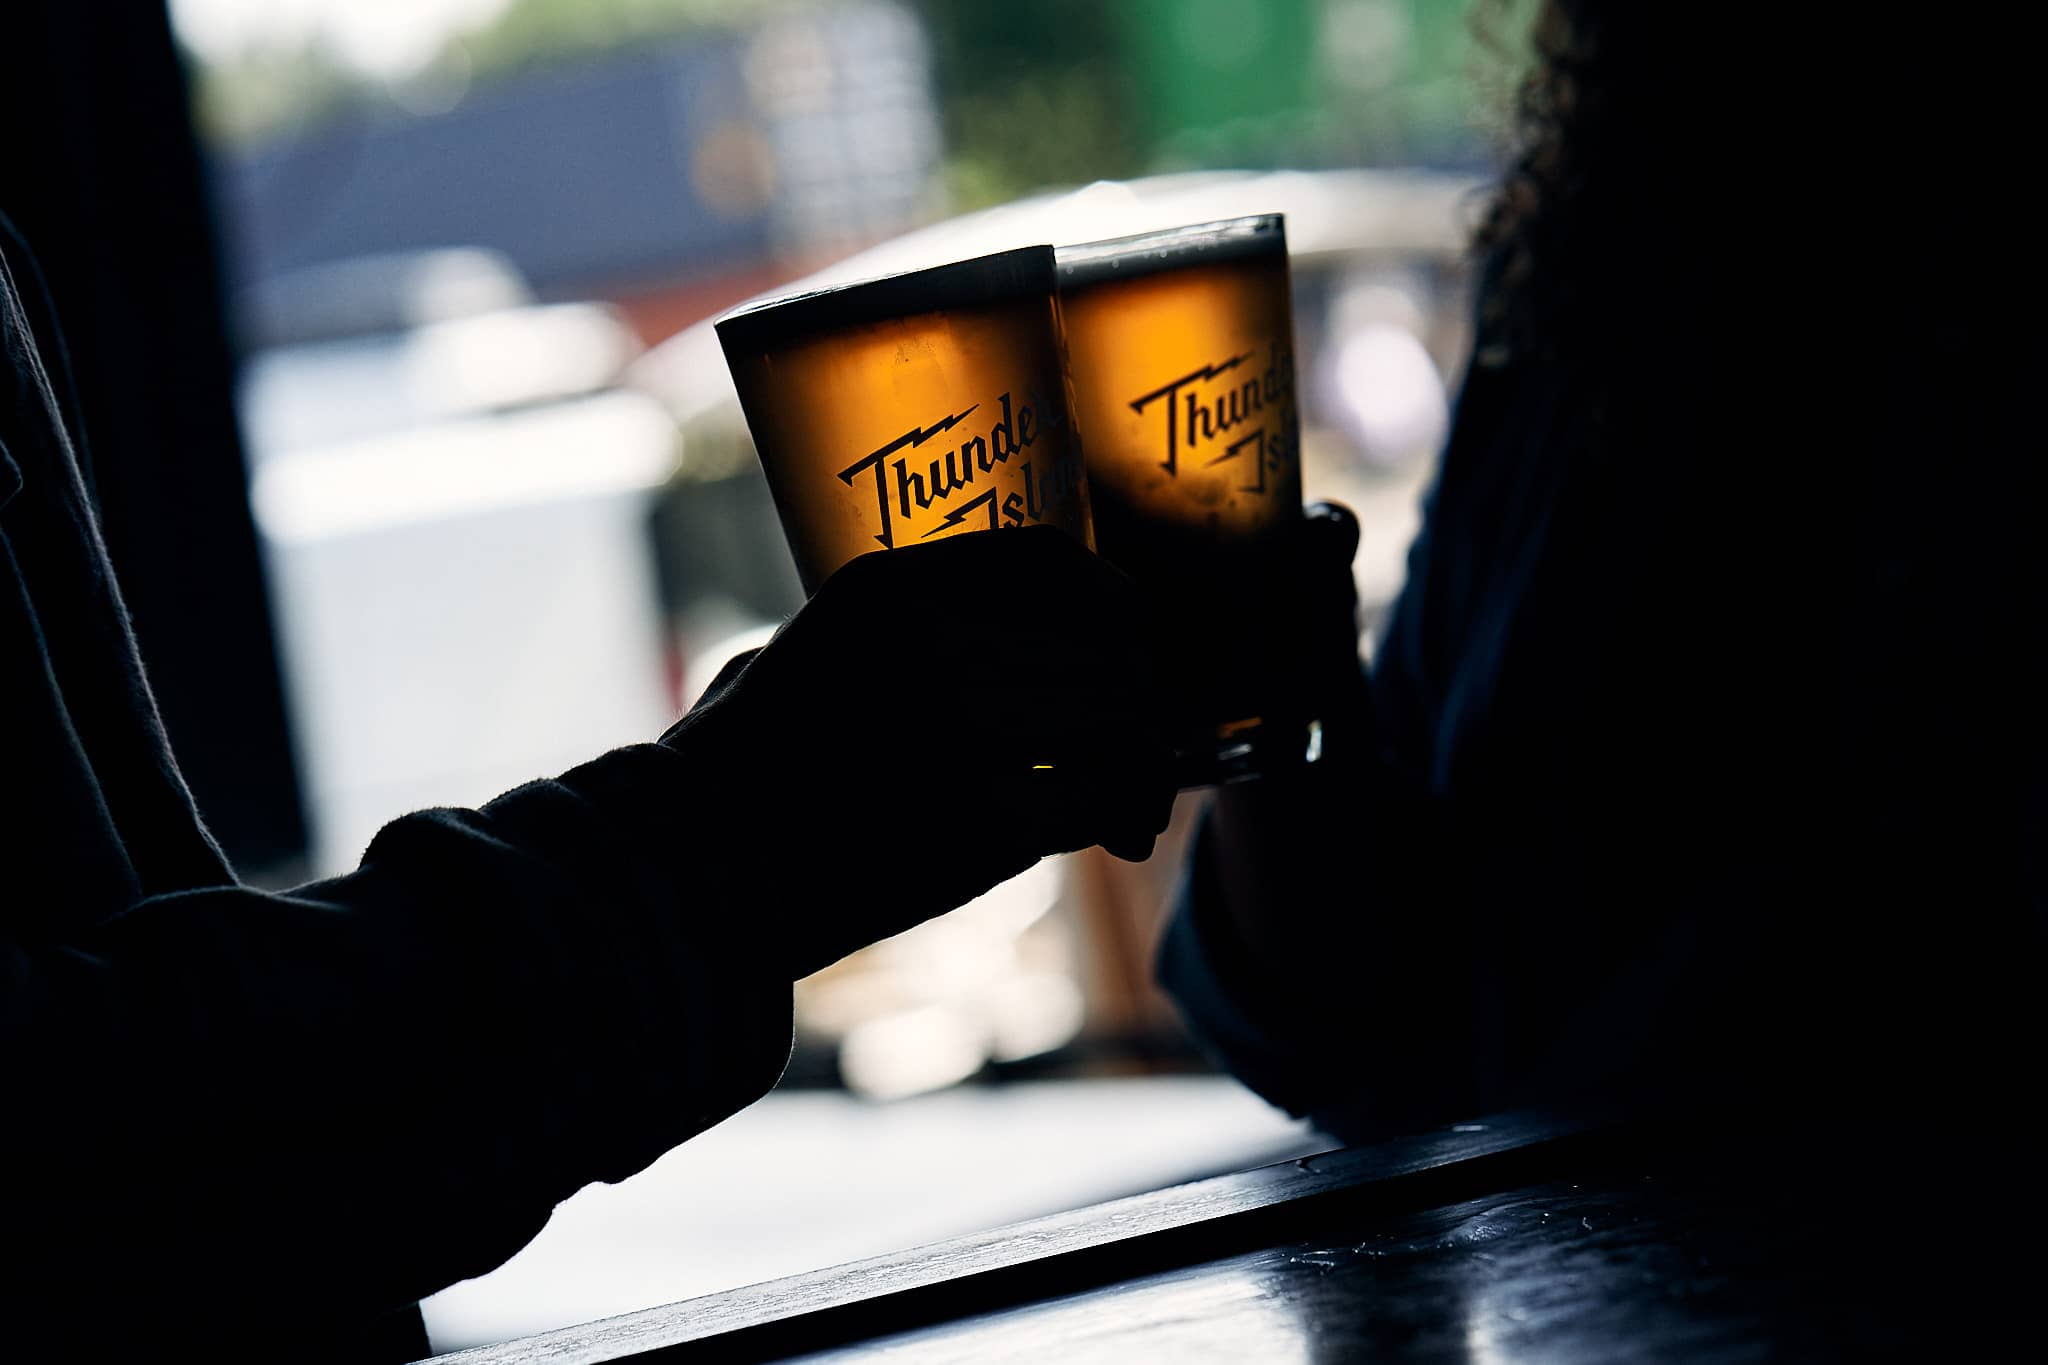 Cheers with two Thunder Island Brewing branded pint glasses